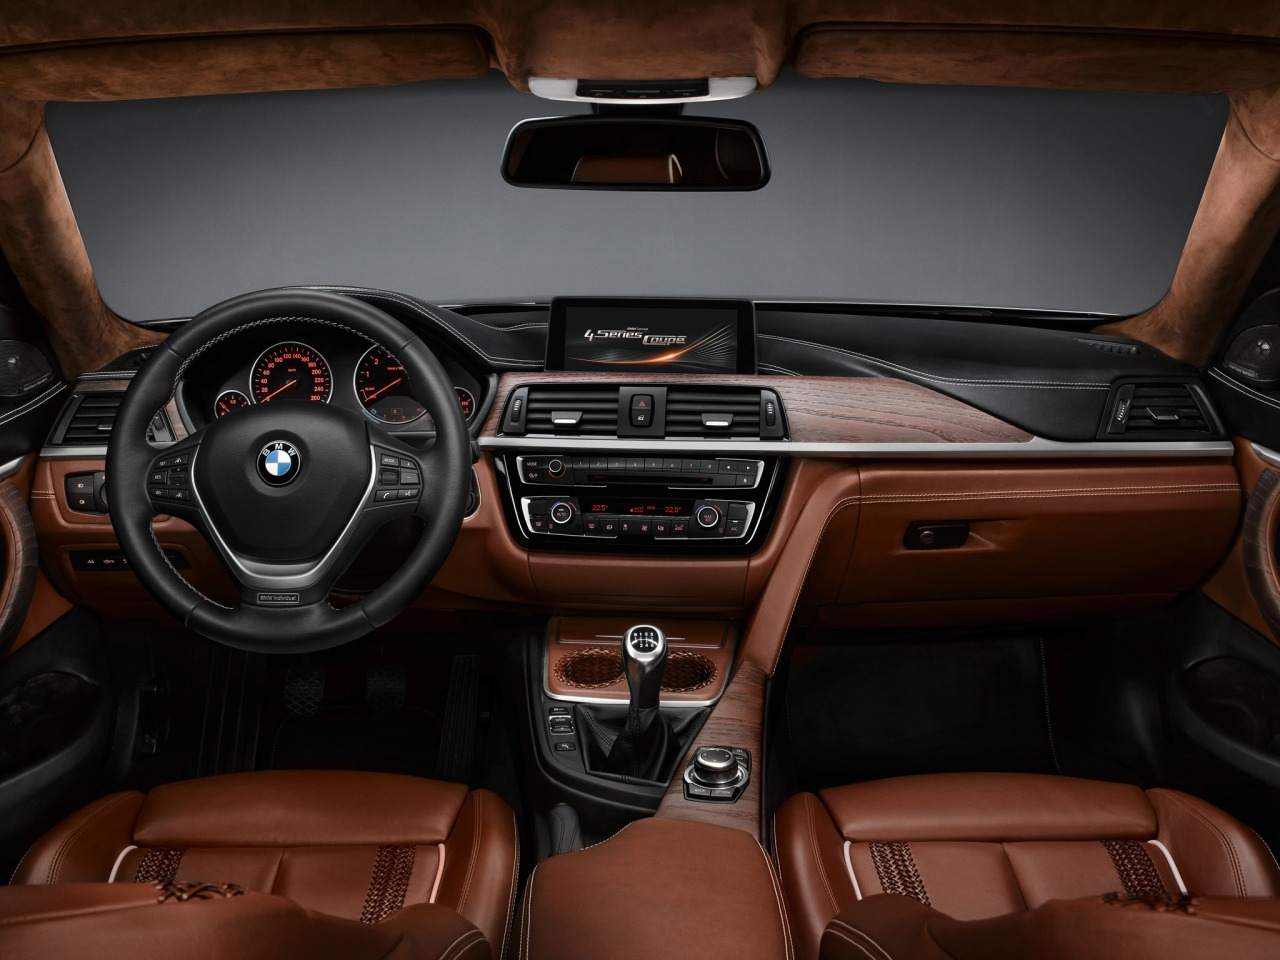 Used 2014 BMW 6 Series Pricing & Features | Edmunds